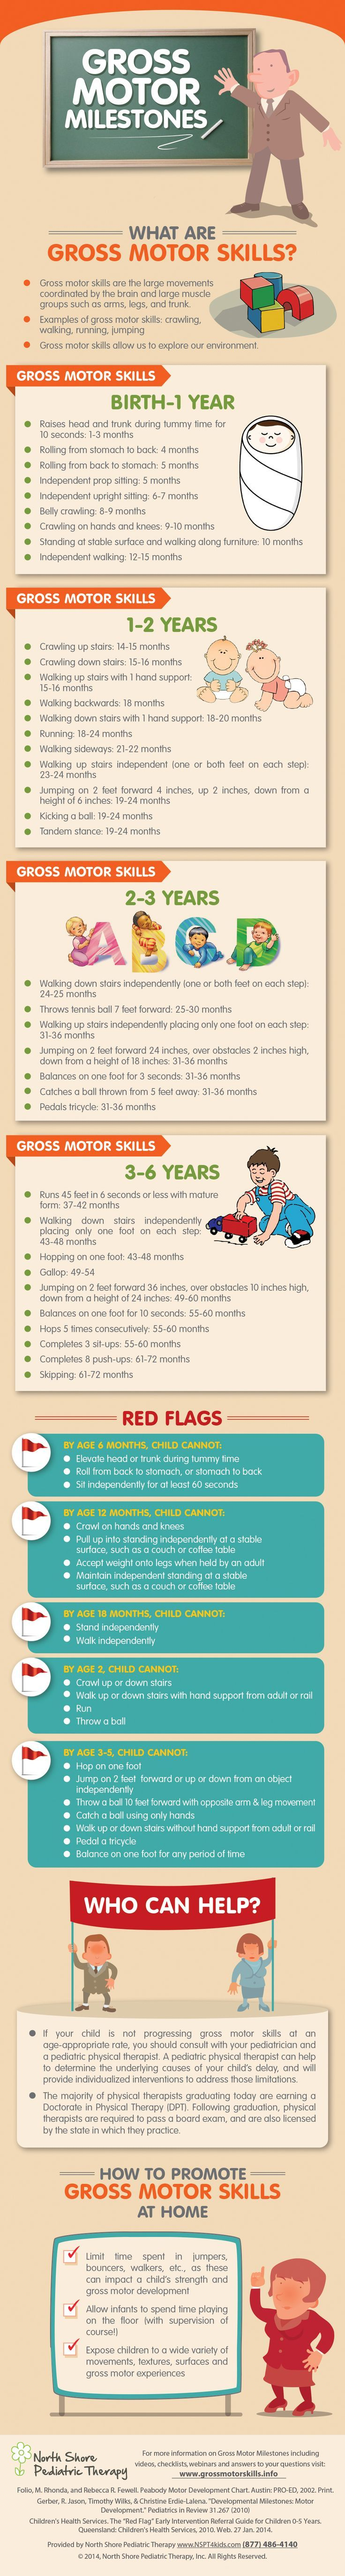 best theory developmental milestones images on pinterest occupational therapy child development chart and also rh